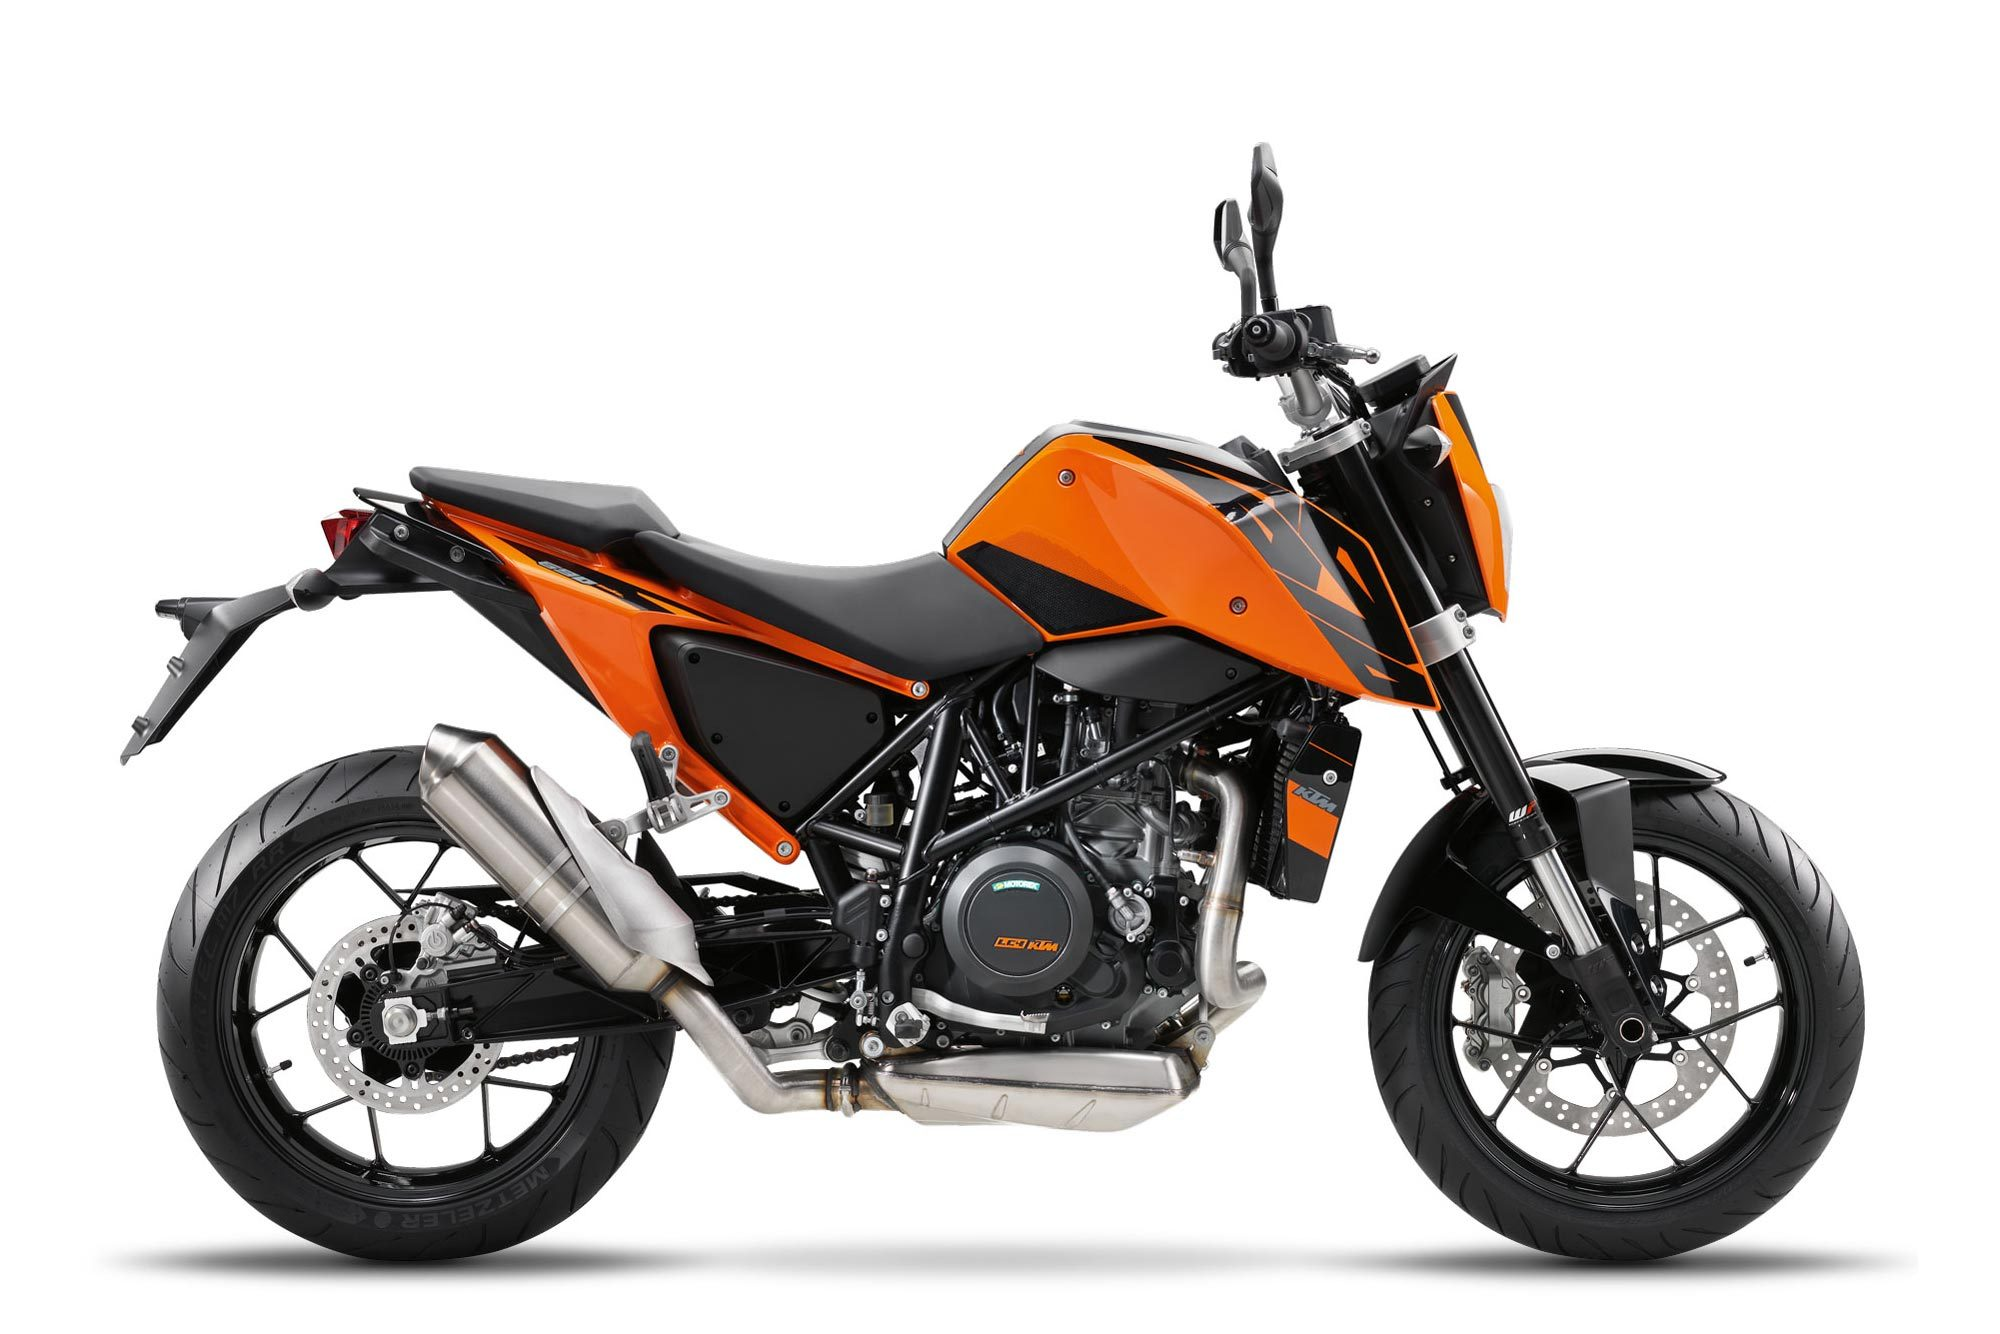 2016 ktm 690 duke announced with substantial changes motorcycle news. Black Bedroom Furniture Sets. Home Design Ideas